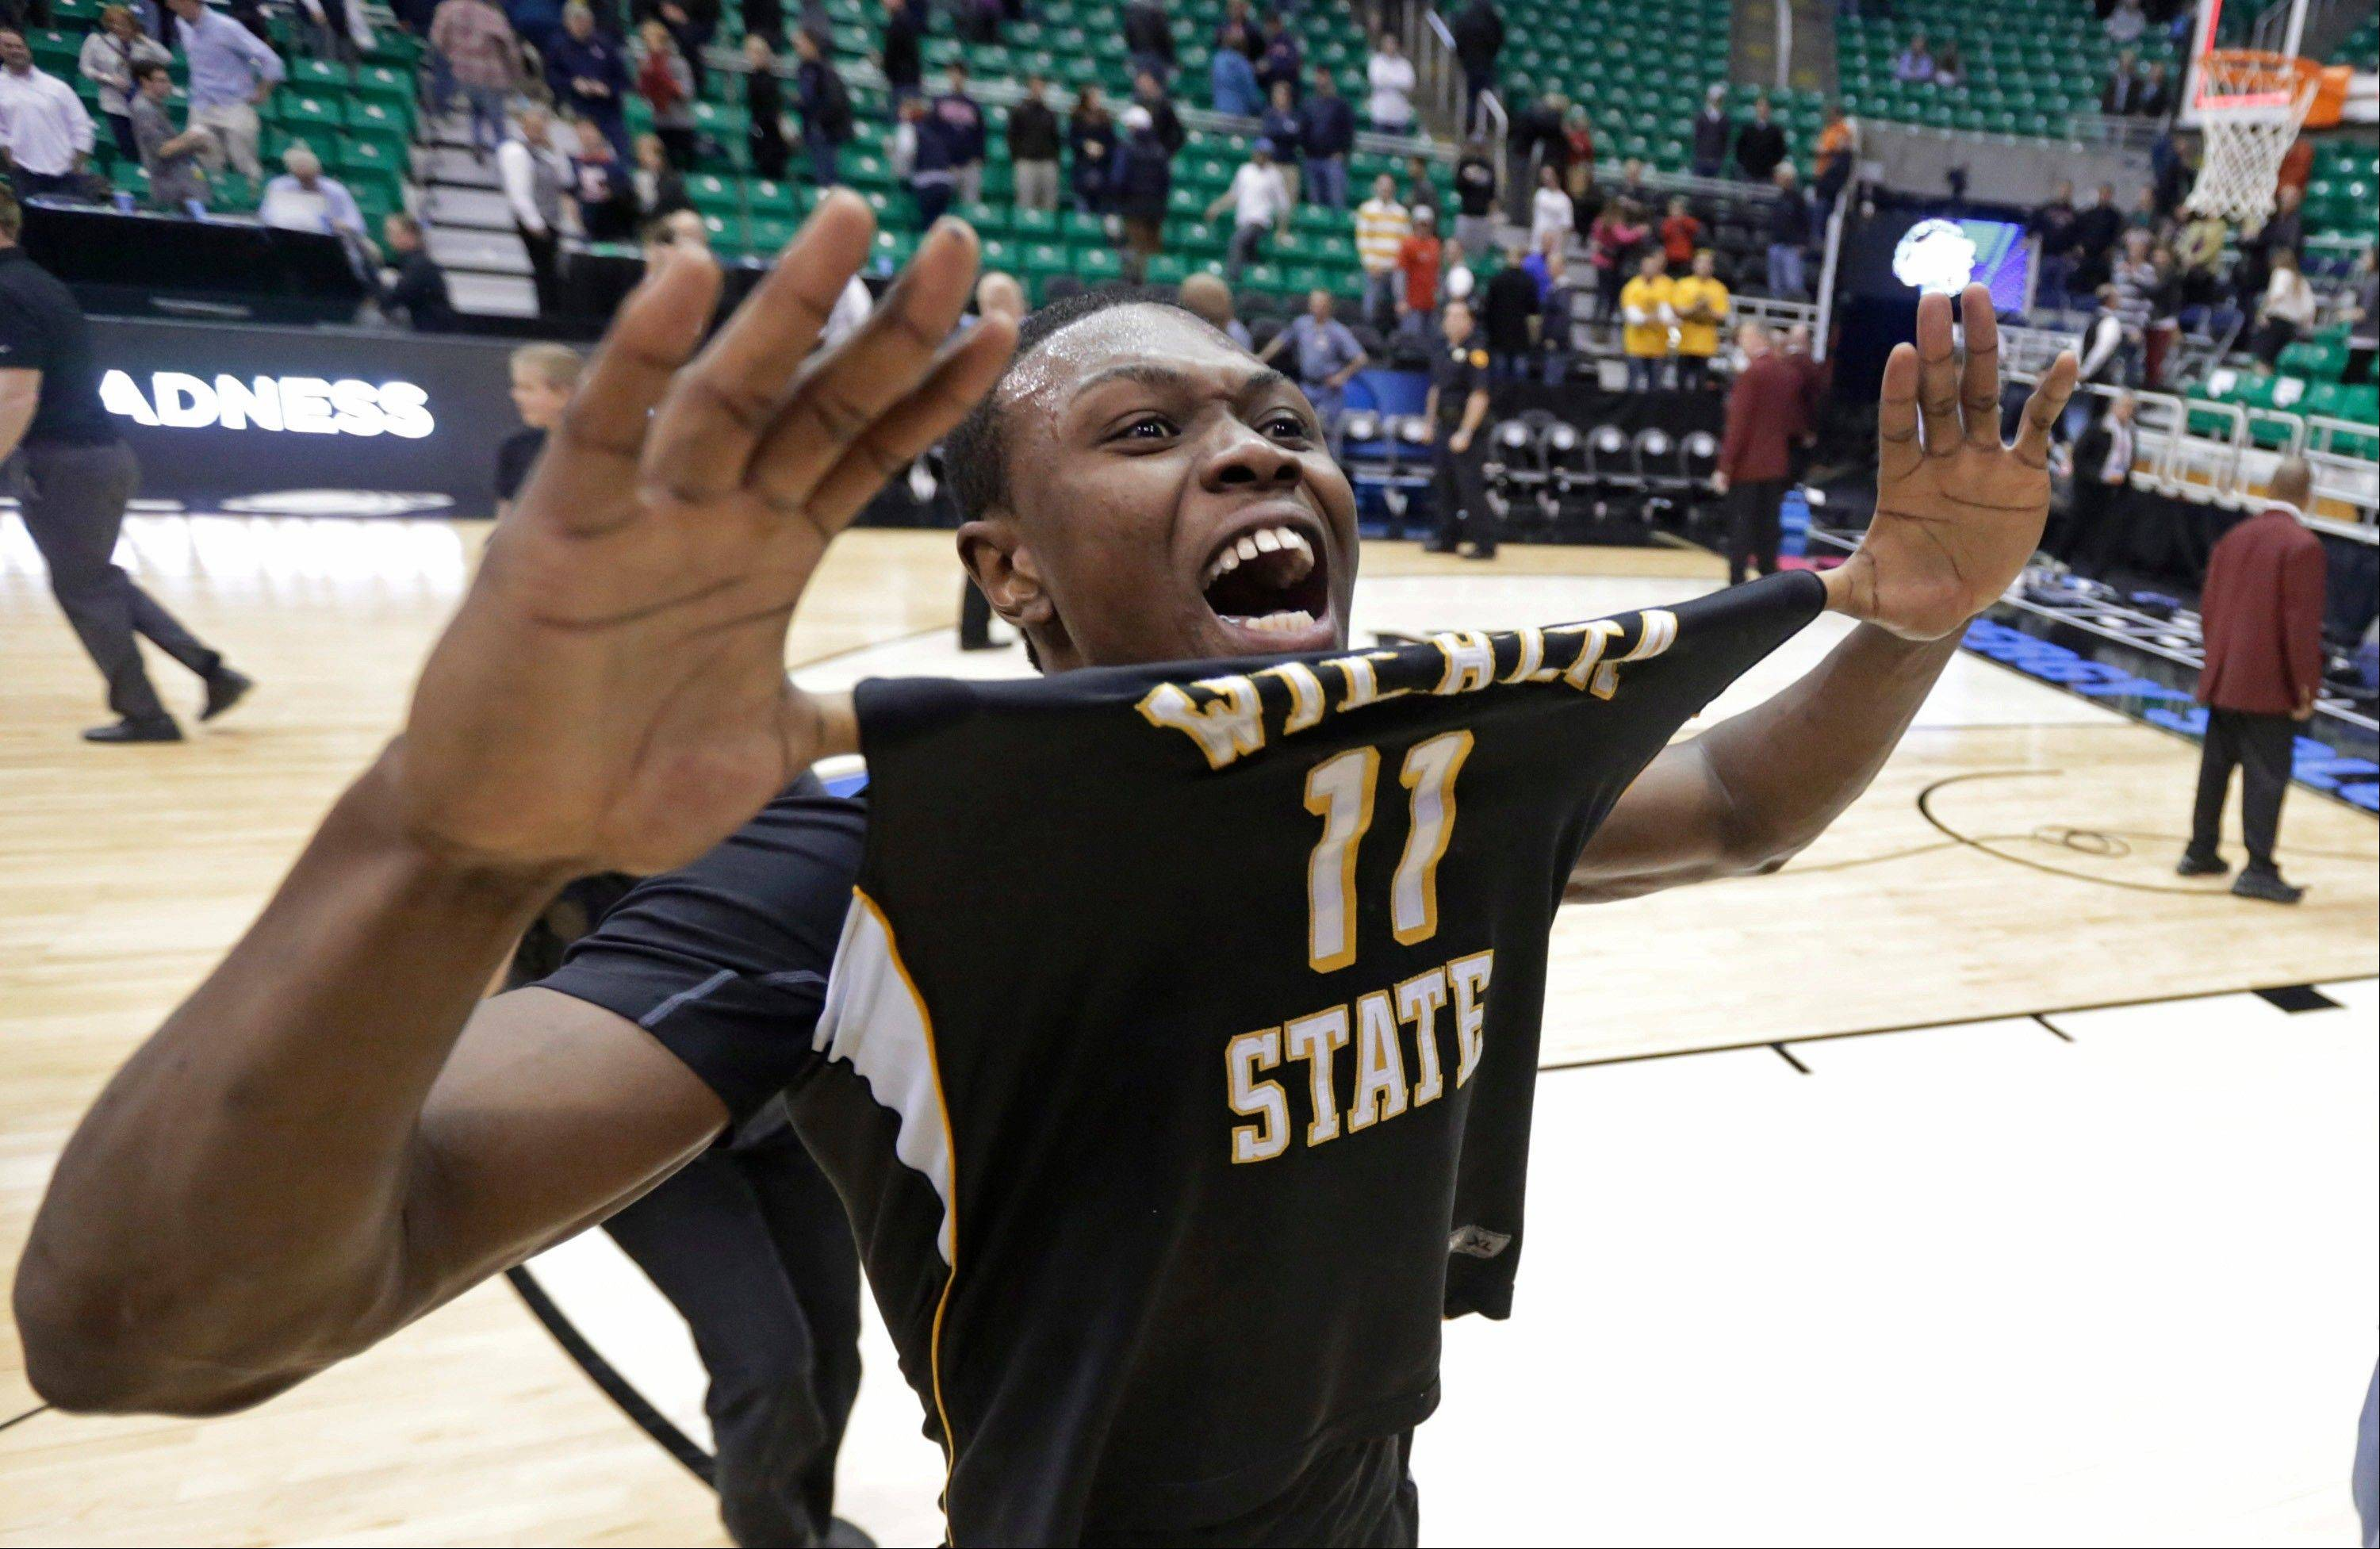 Wichita State�s Cleanthony Early (11) celebrates his team defeating Gonzaga 76-70 during a third-round game in the NCAA men�s college basketball tournament Saturday night in Salt Lake City.